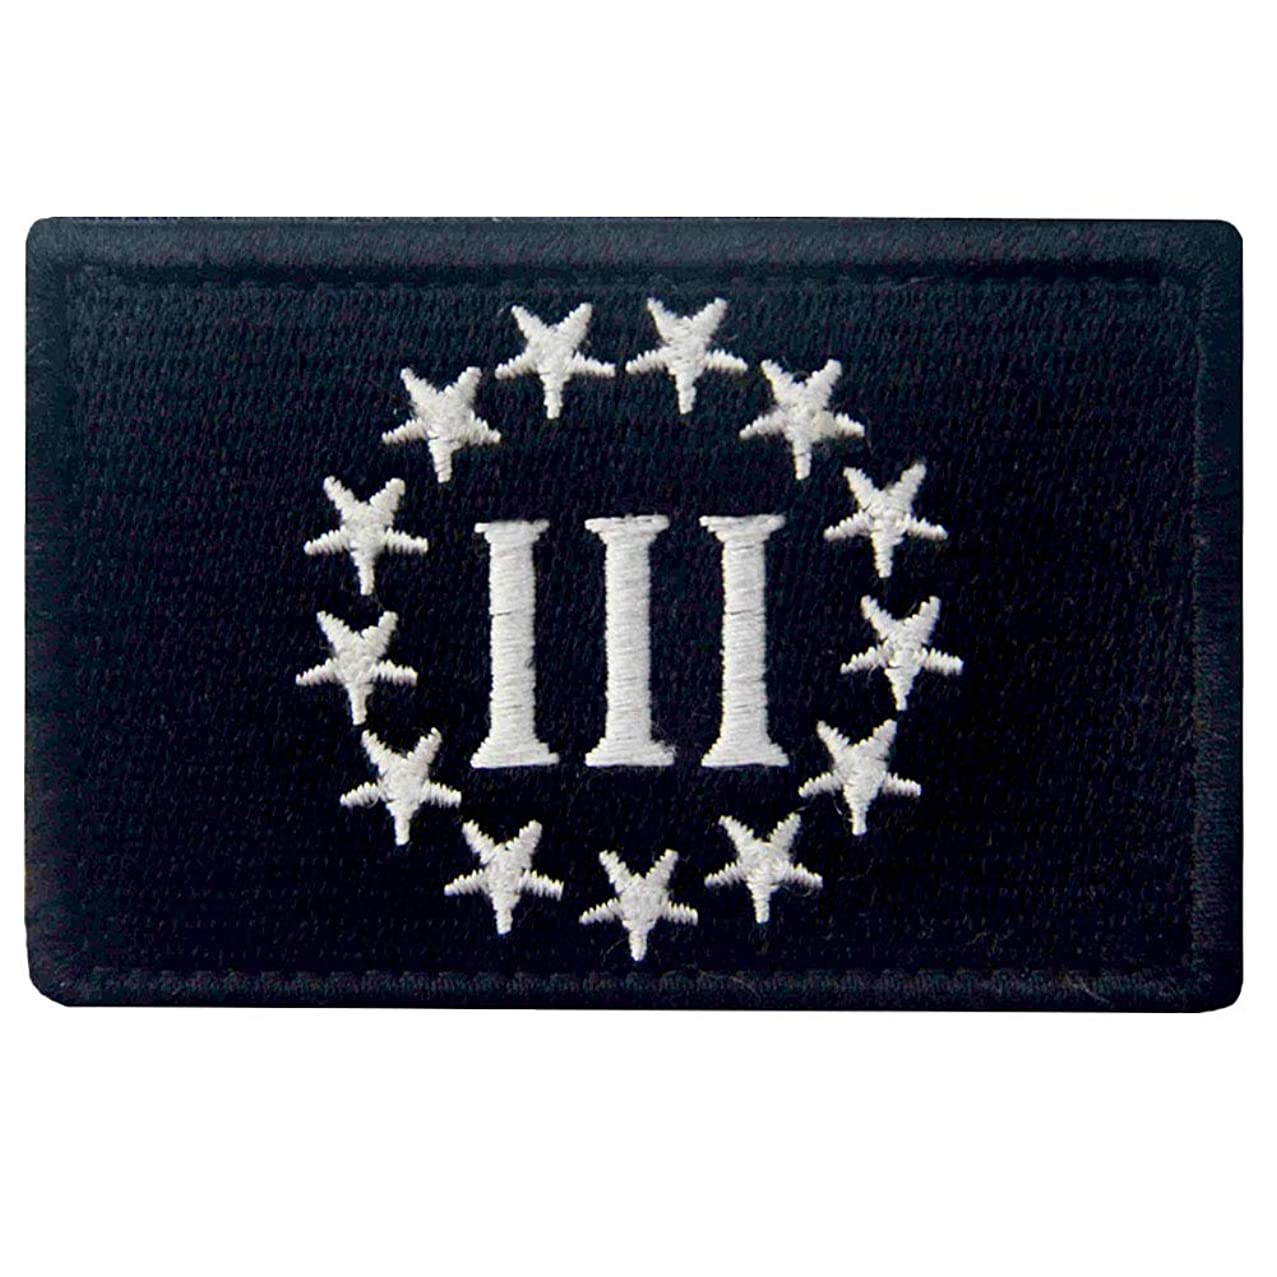 Three Percenter Tactical Morale Patch Embroidered Military Applique Fastener Hook & Loop Emblem